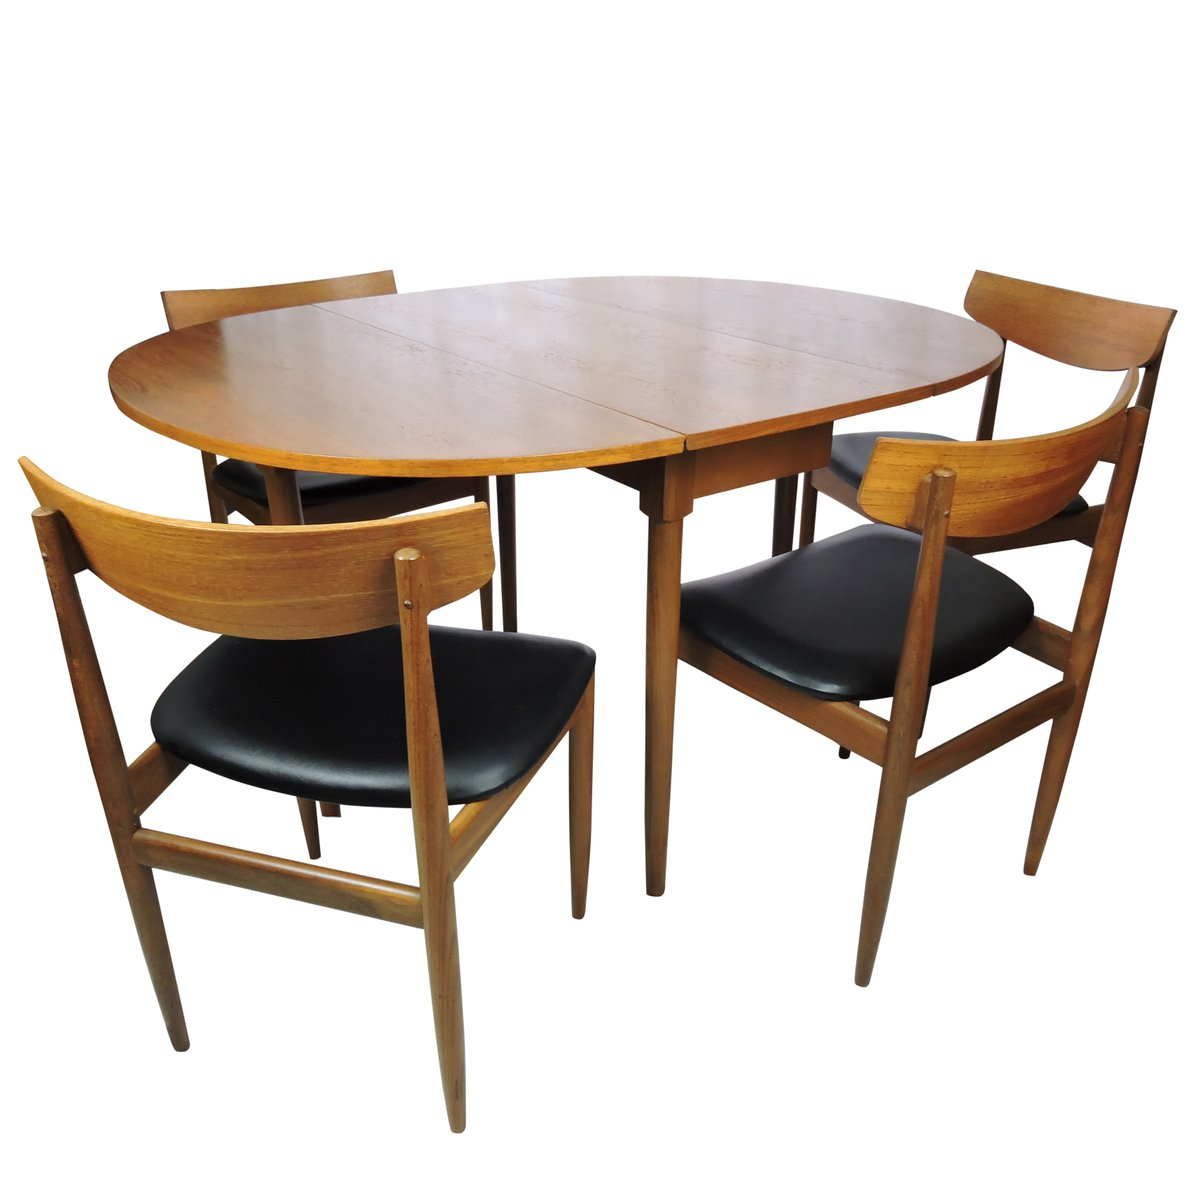 Vintage Dining Table And Chairs From G Plan